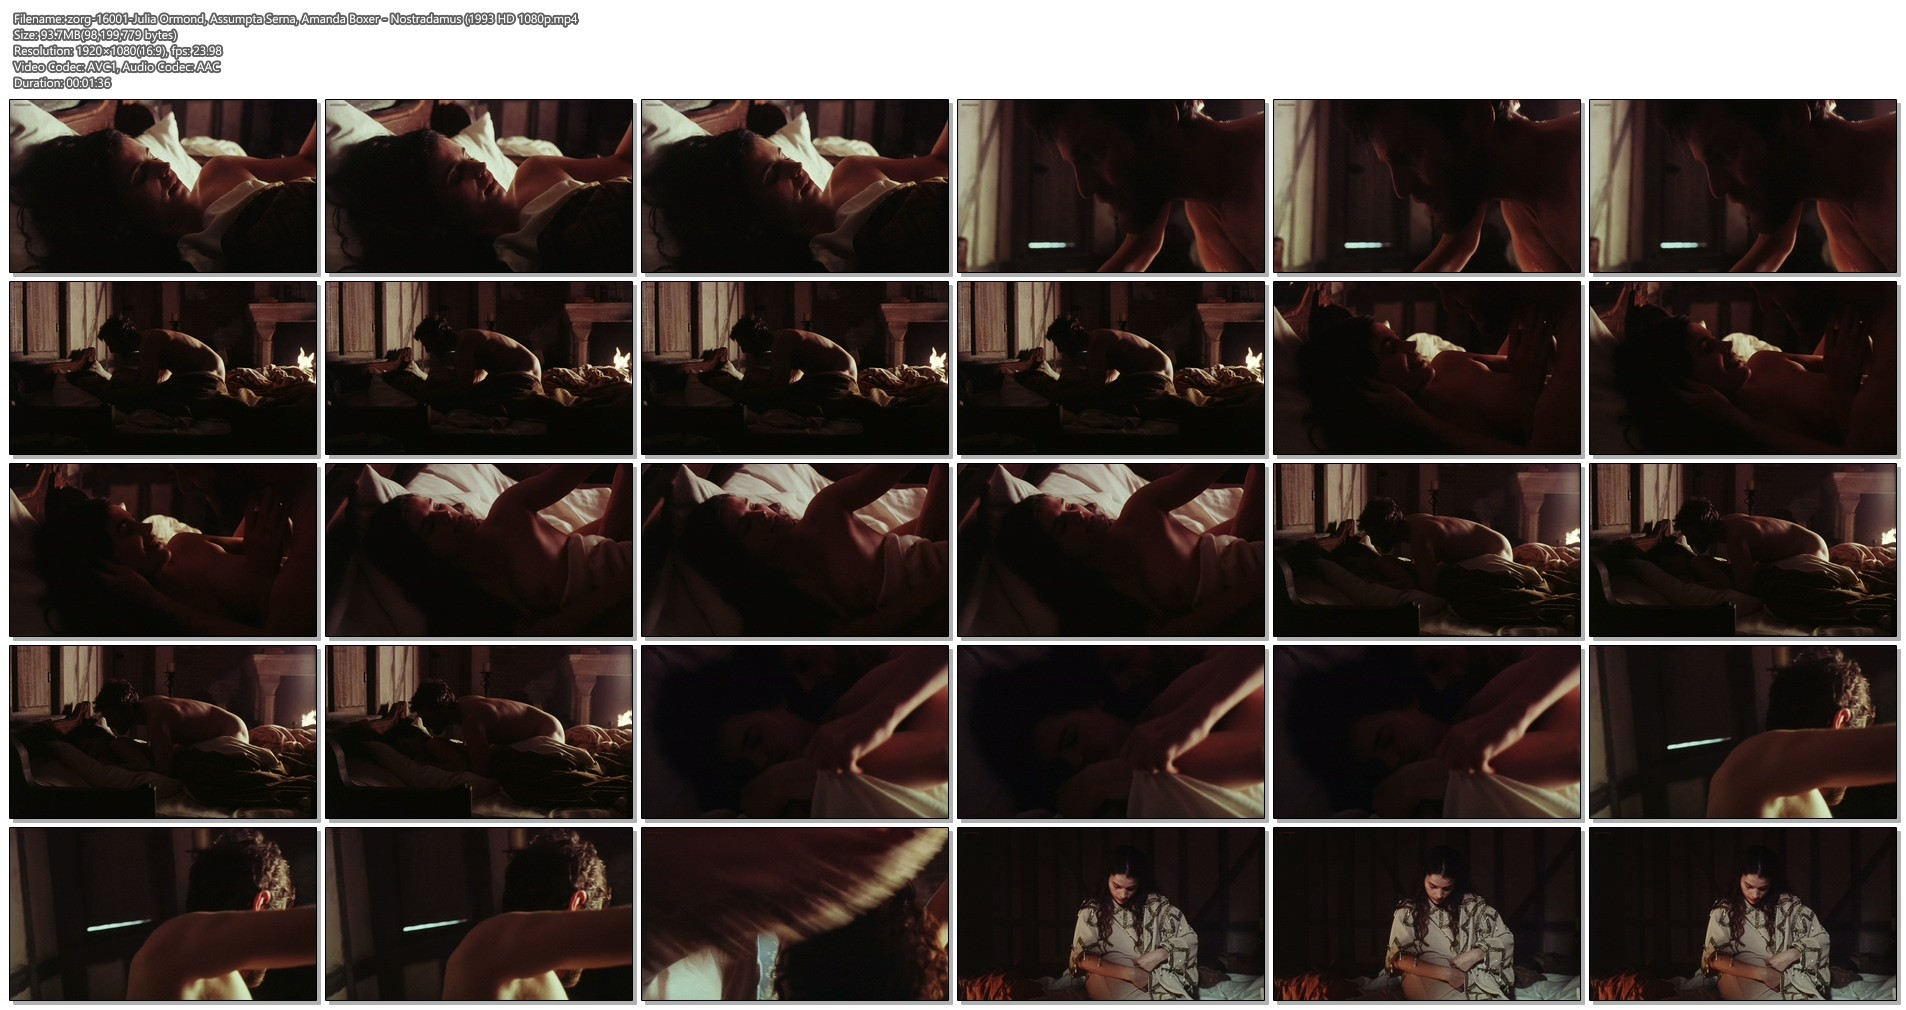 Julia Ormond nude brief topless Assumpta Serna nude topless Amanda Boxer and Diana Quick all nude topless - Nostradamus (1993) HD 1080p BluRay (12)